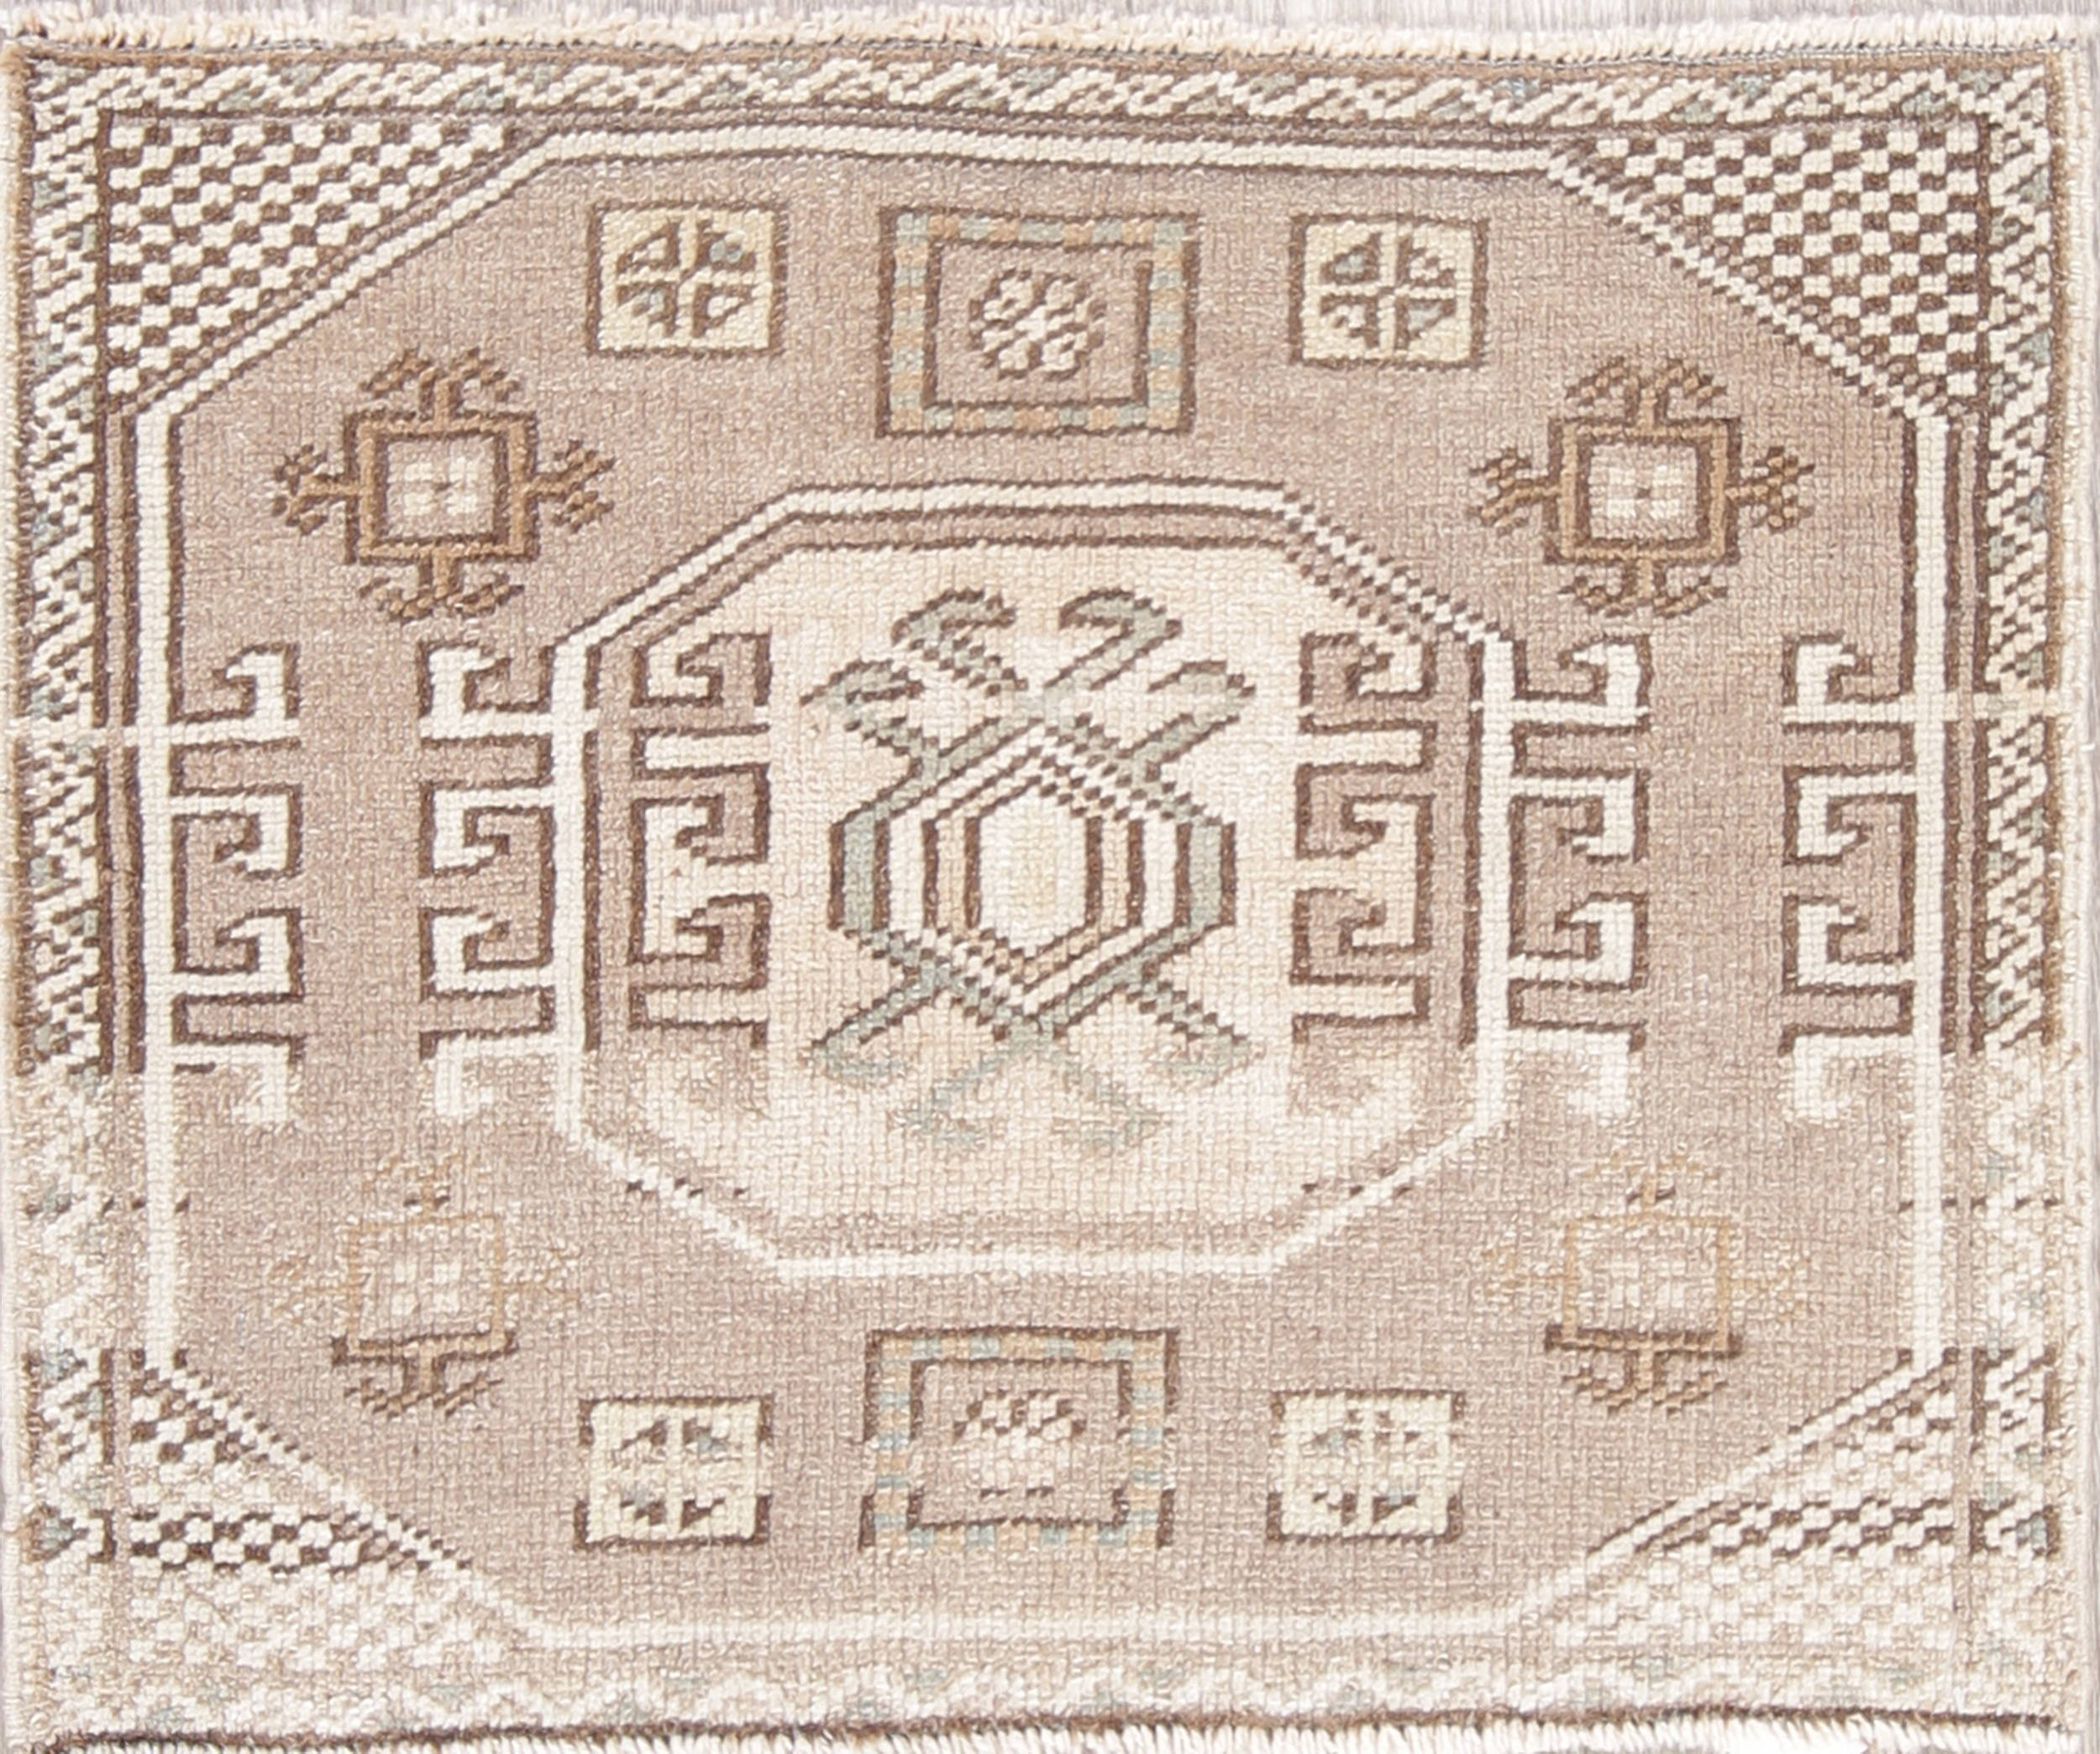 Geometric Muted Oushak Turkish Hand-Knotted 2x2 Square Wool Rug